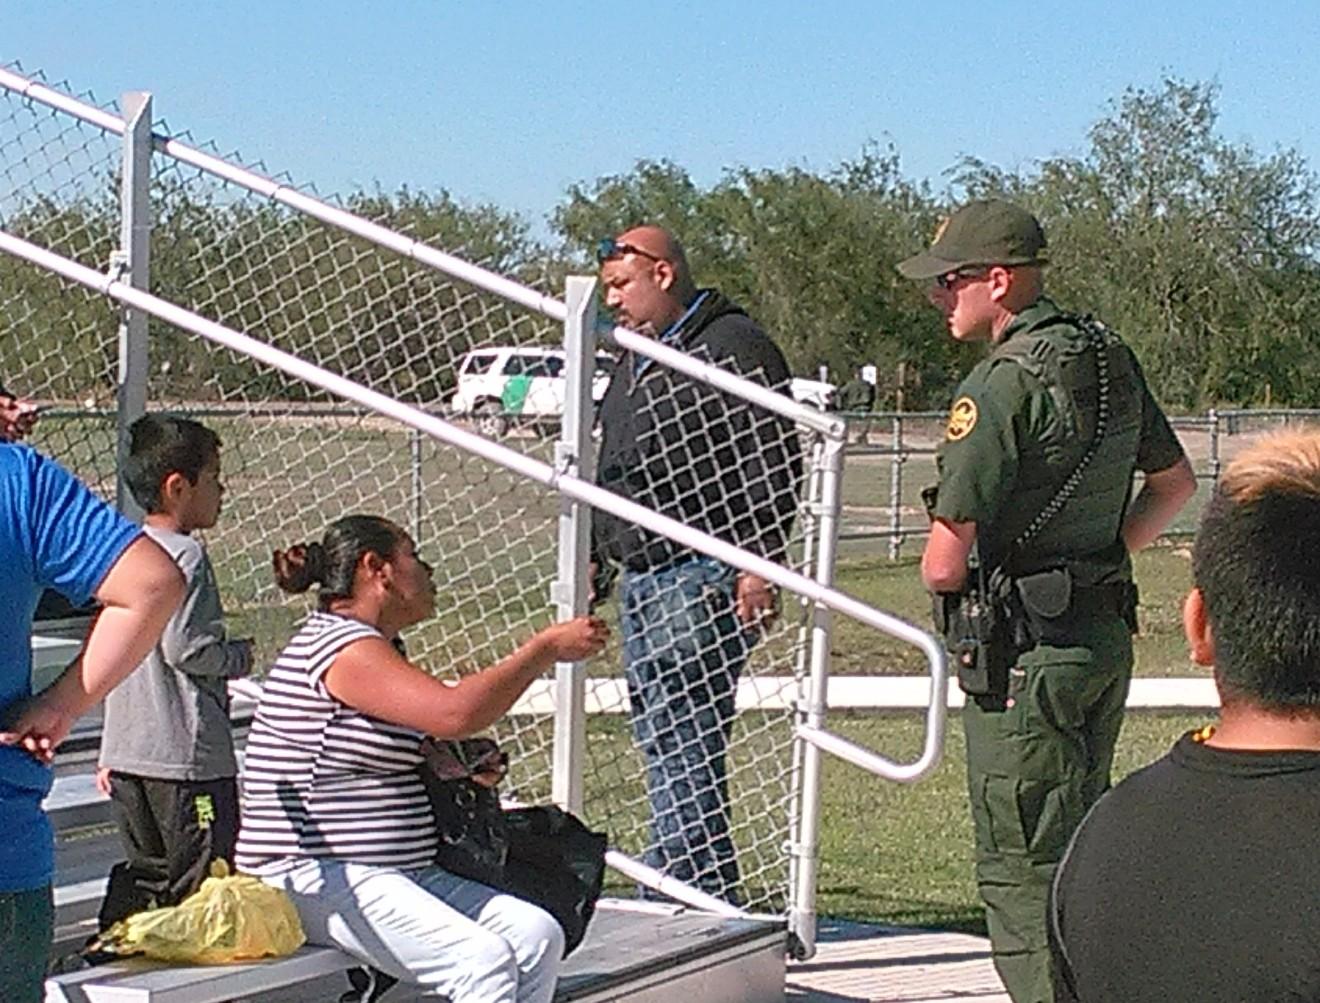 La Joya Sports Park Border Patrol DPS Photo 5 (112016 via Frances Salinas).jpg